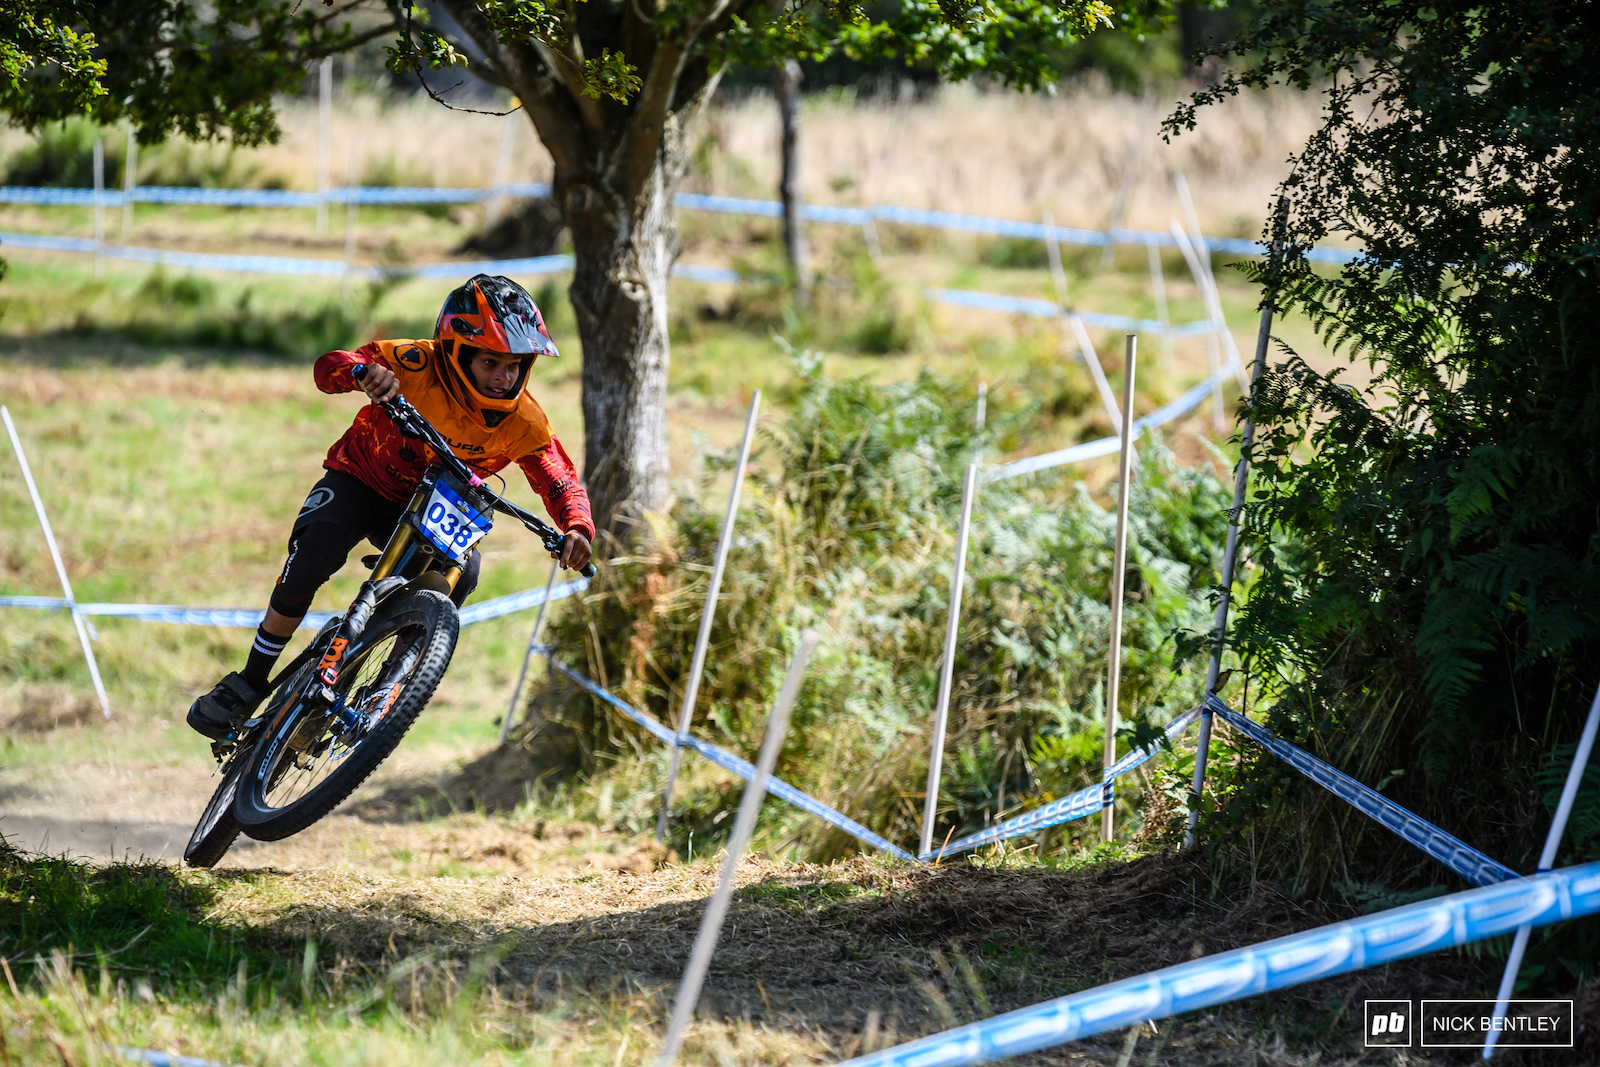 Nathan De Vaux popping his way through the trees